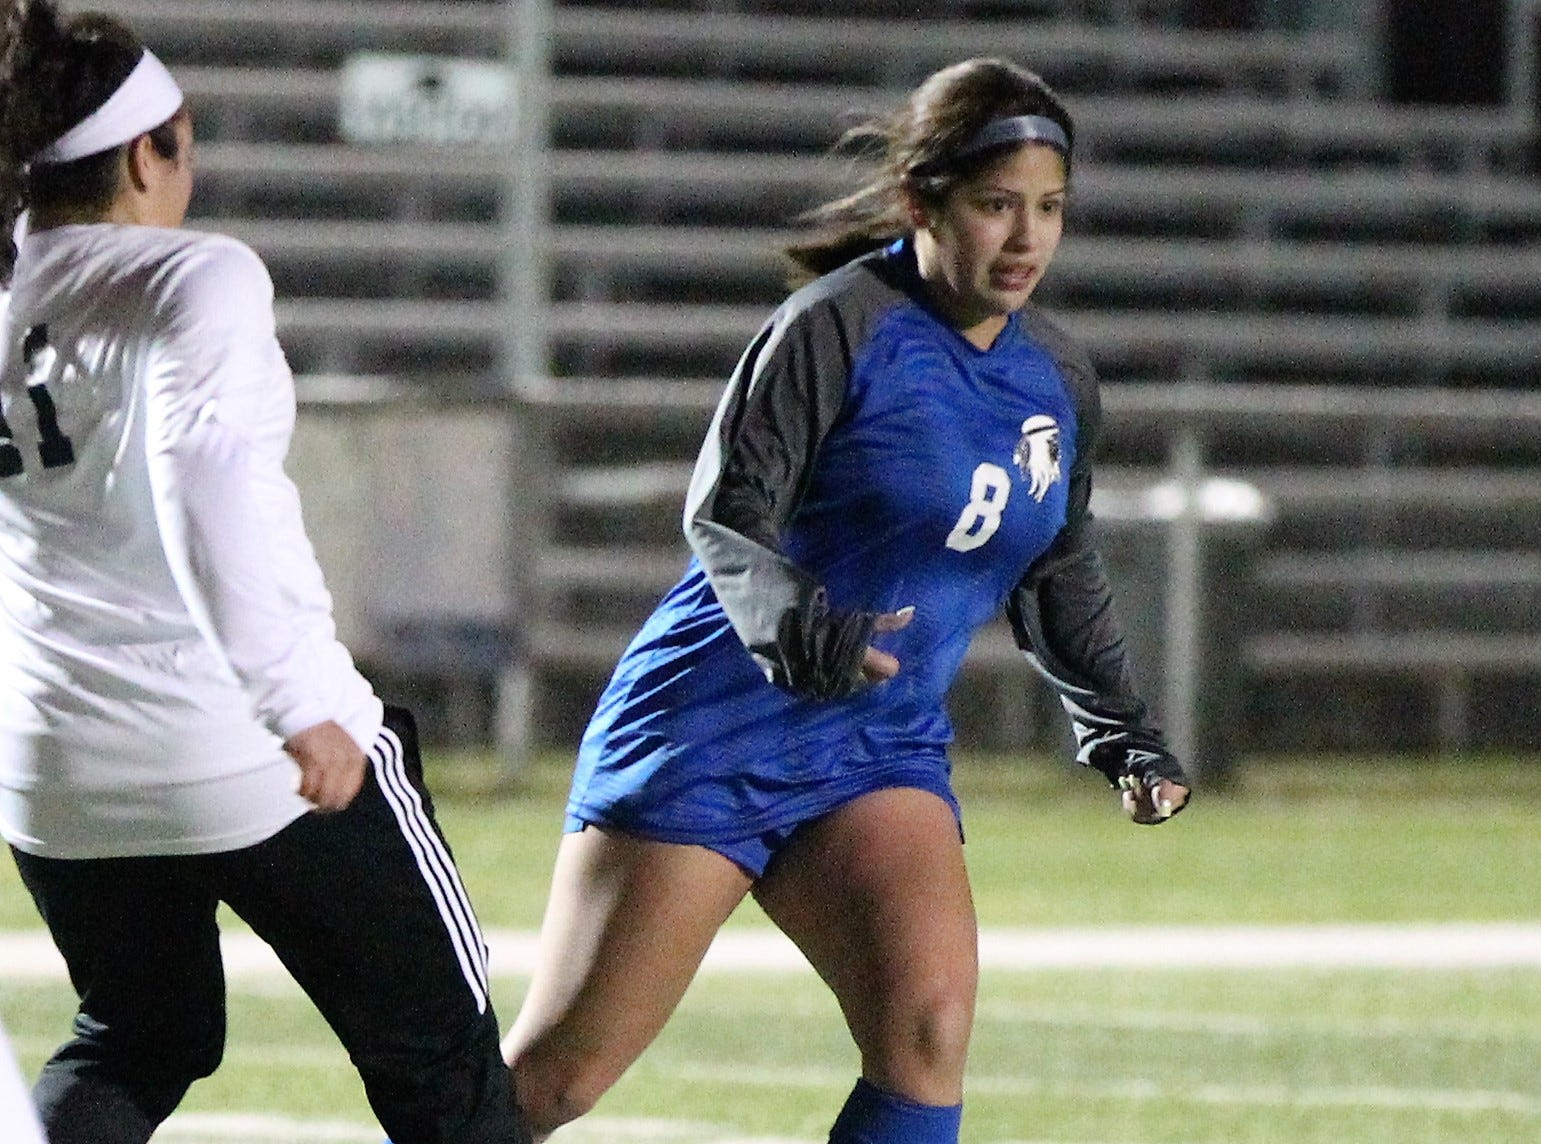 Lake View's Ariana Rangel controls the ball in a District 4-4A soccer match against Snyder at Old Bobcat Stadium on Tuesday, March 5, 2019.